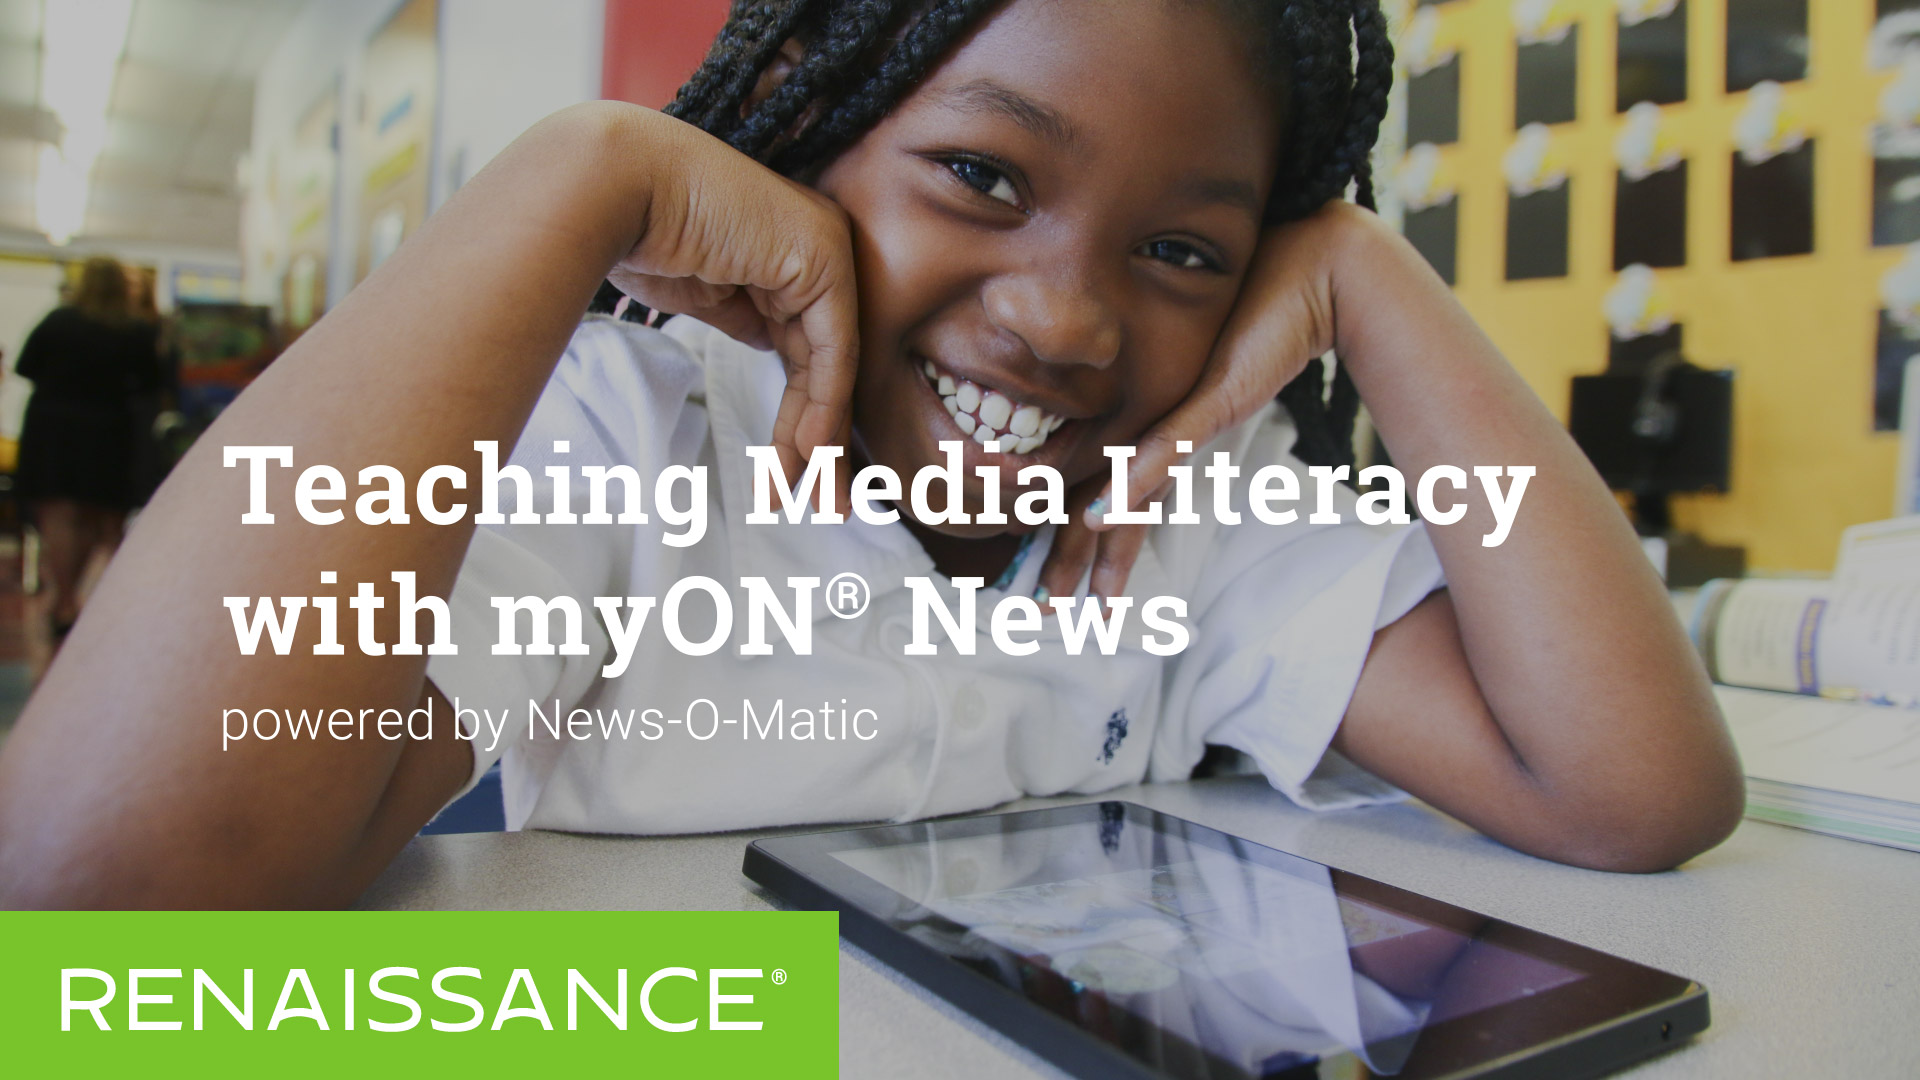 Teaching Media Literacy with myON News